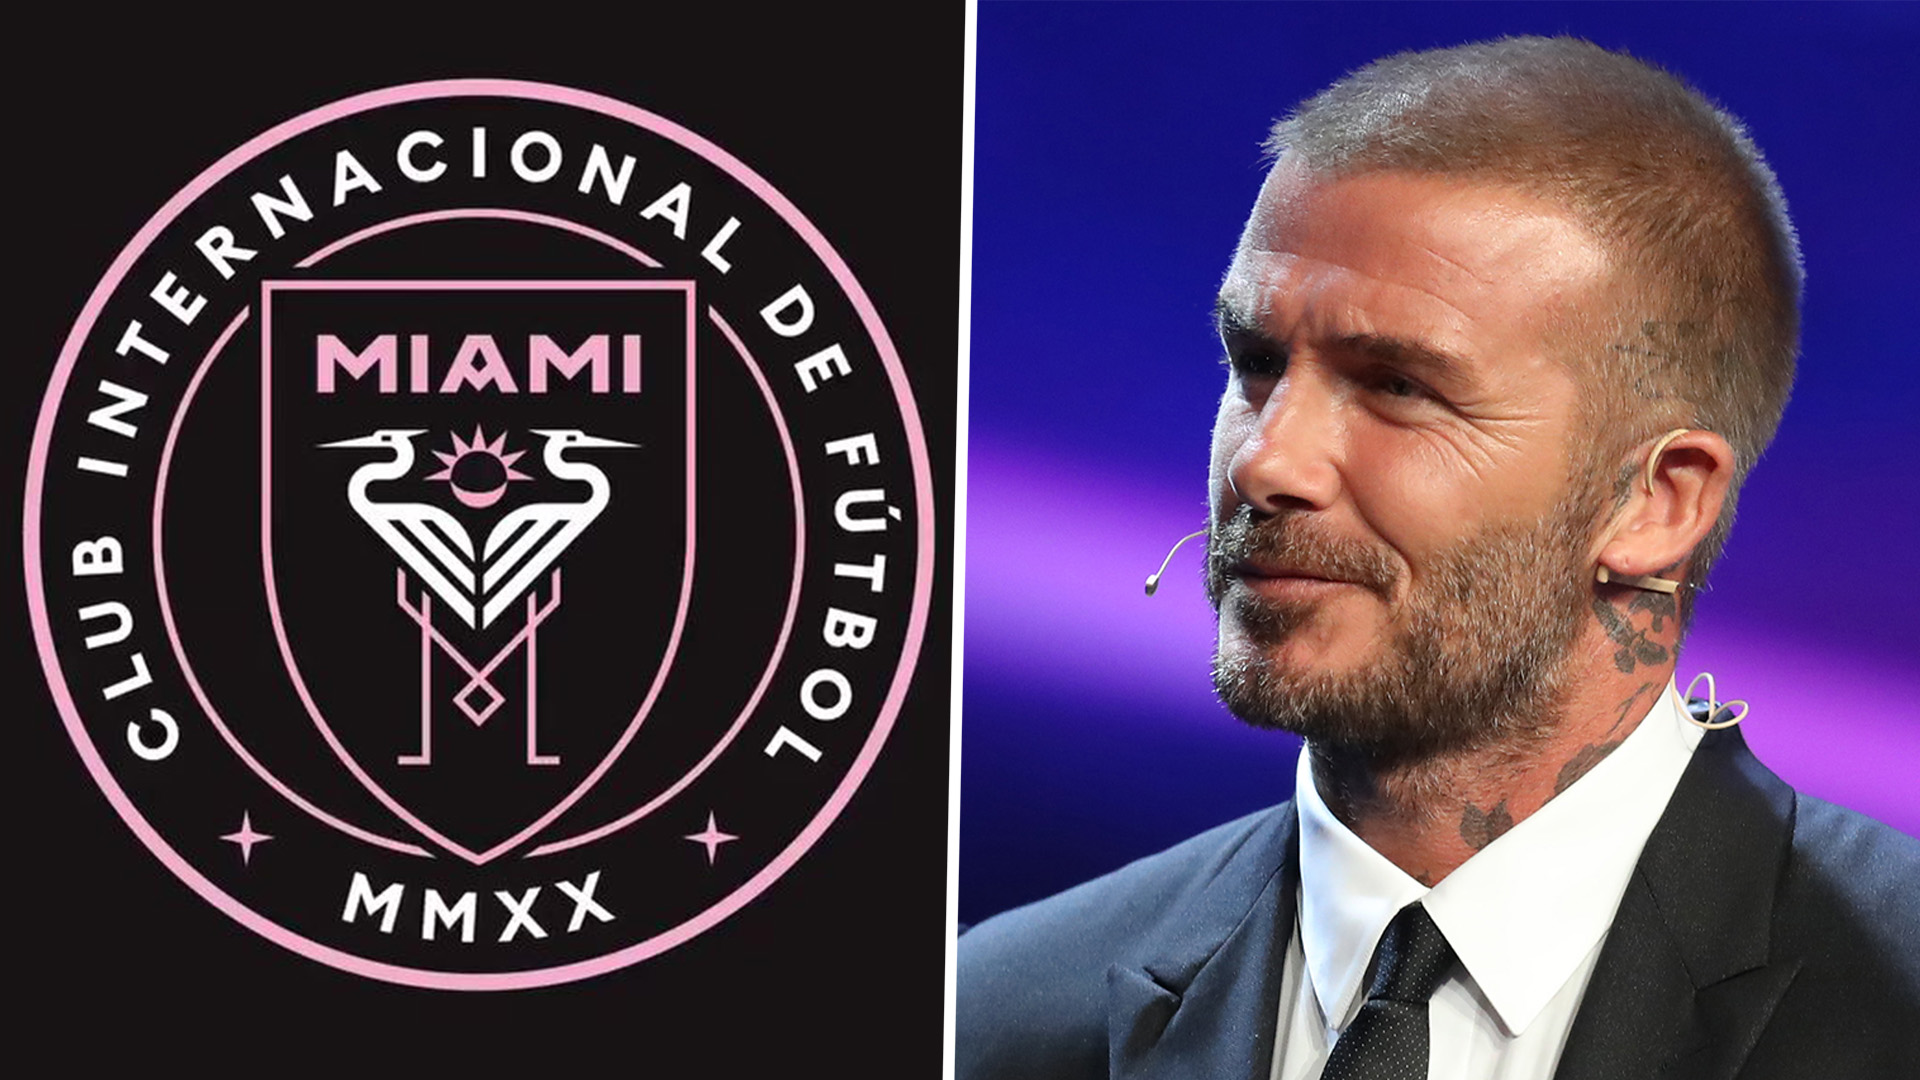 David Beckham's Major League Soccer team unveils name, crest